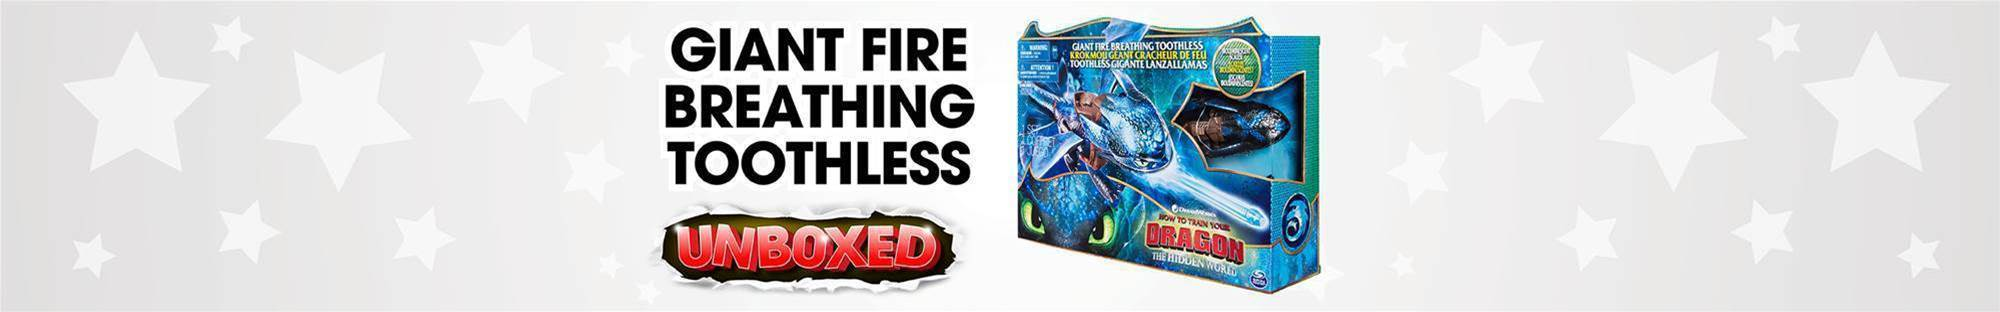 Giant Fire Breathing Toothless Unboxing